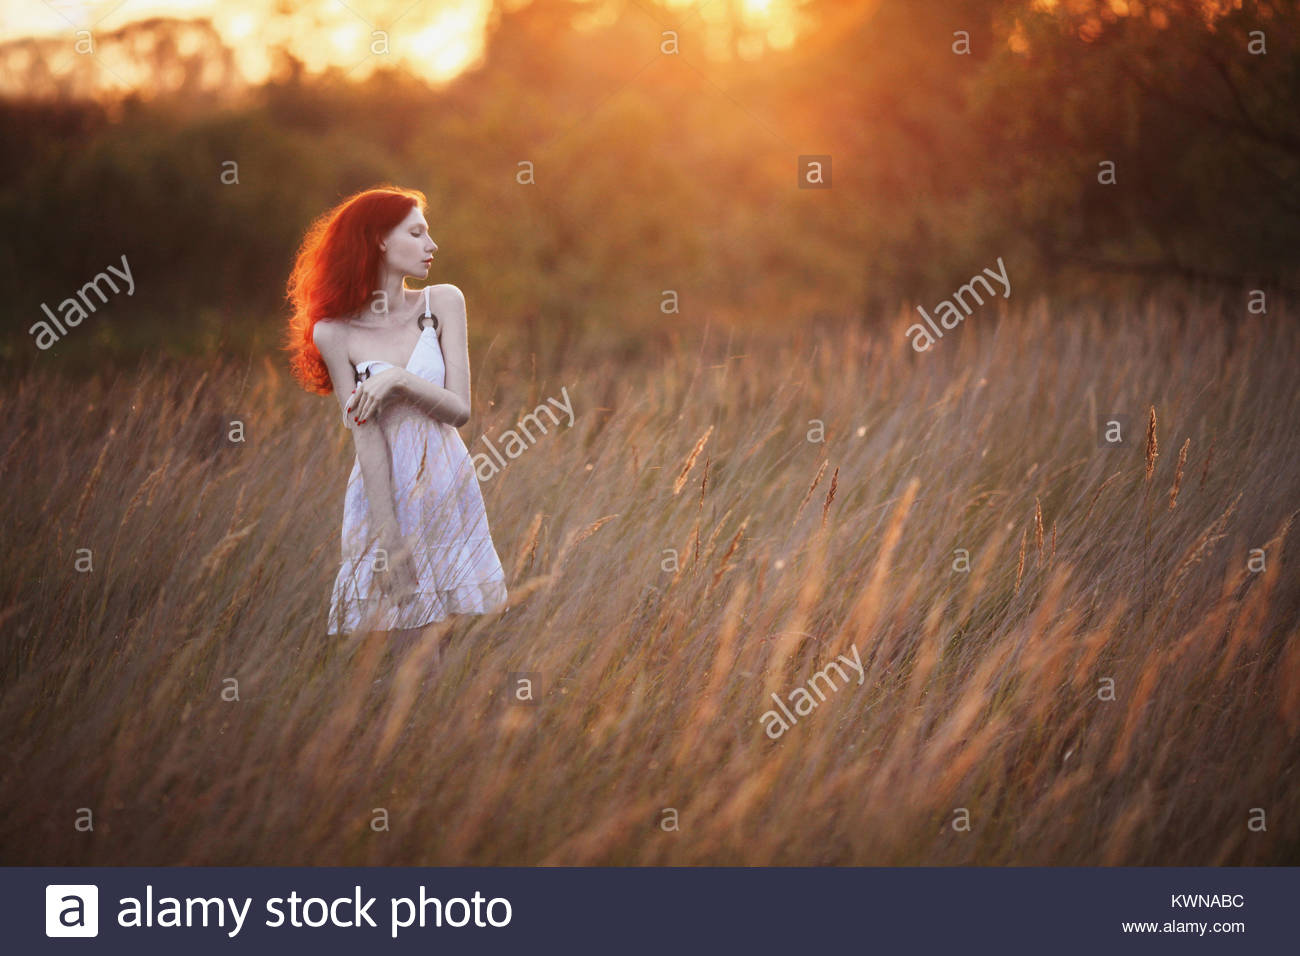 A woman with red curly hair in white sundress on background of dawn. Red-haired girl with pale skin, bright unusual - Stock Image